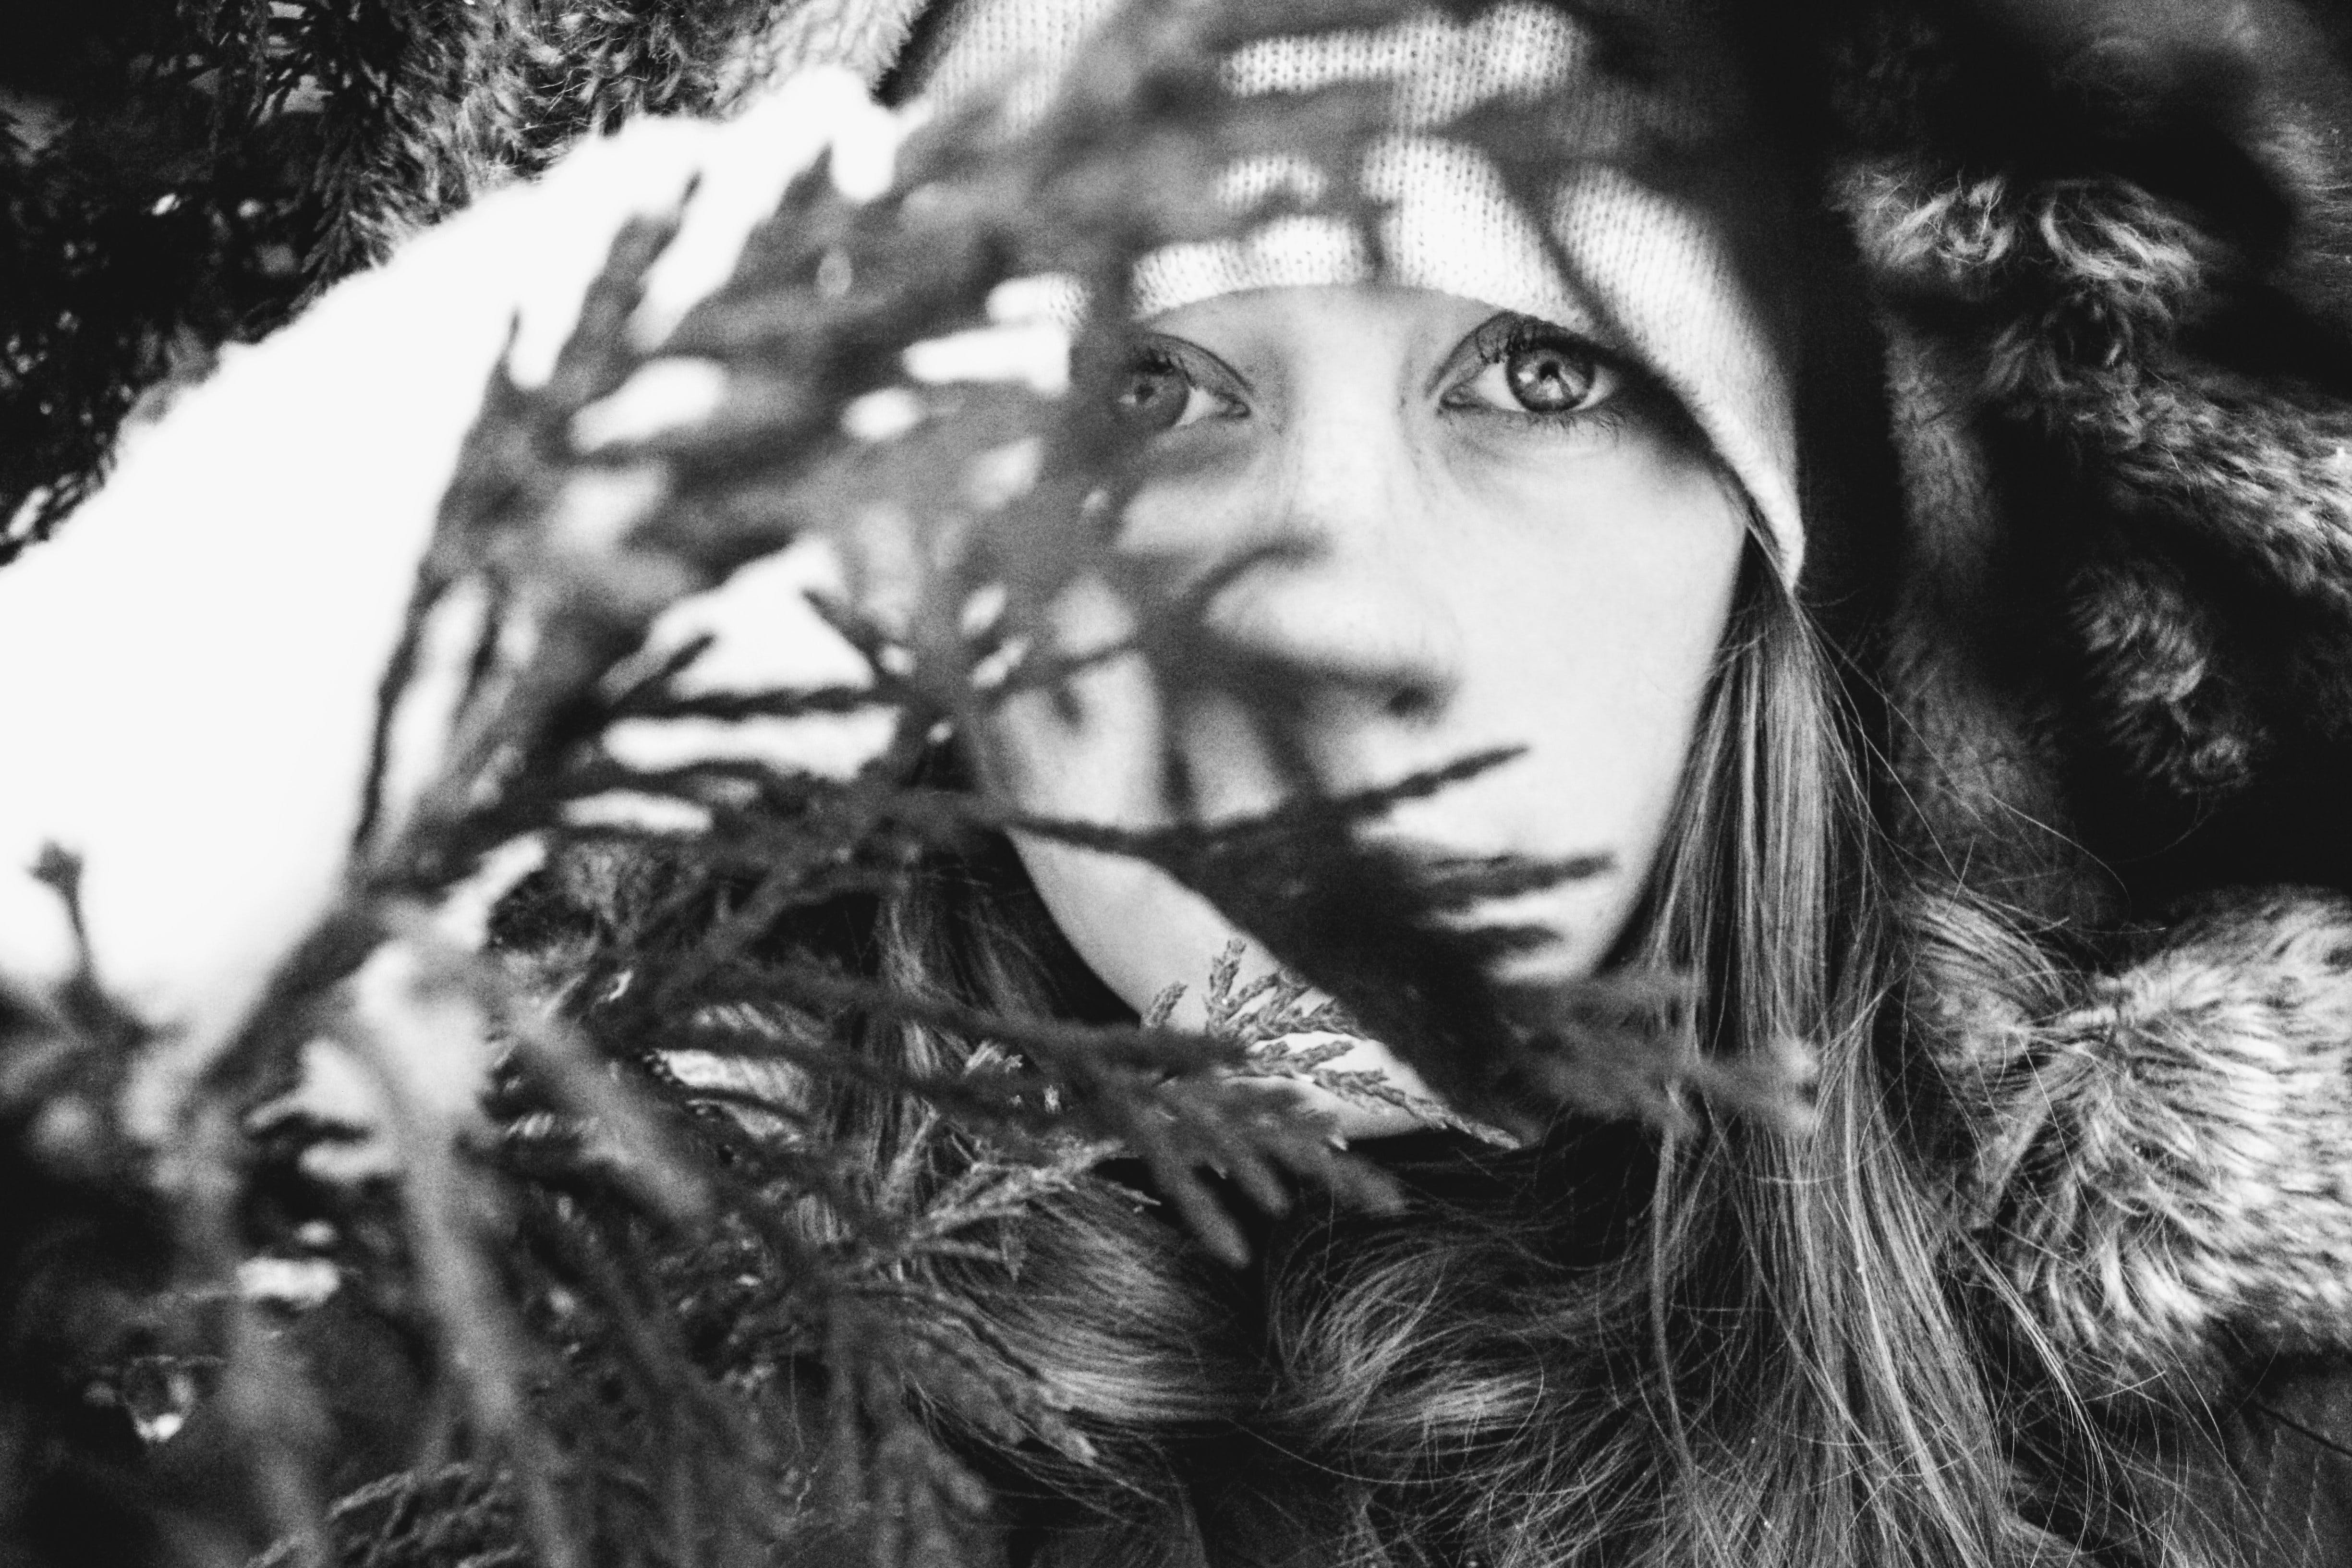 Grayscale Photo Of Woman Behind Leaves